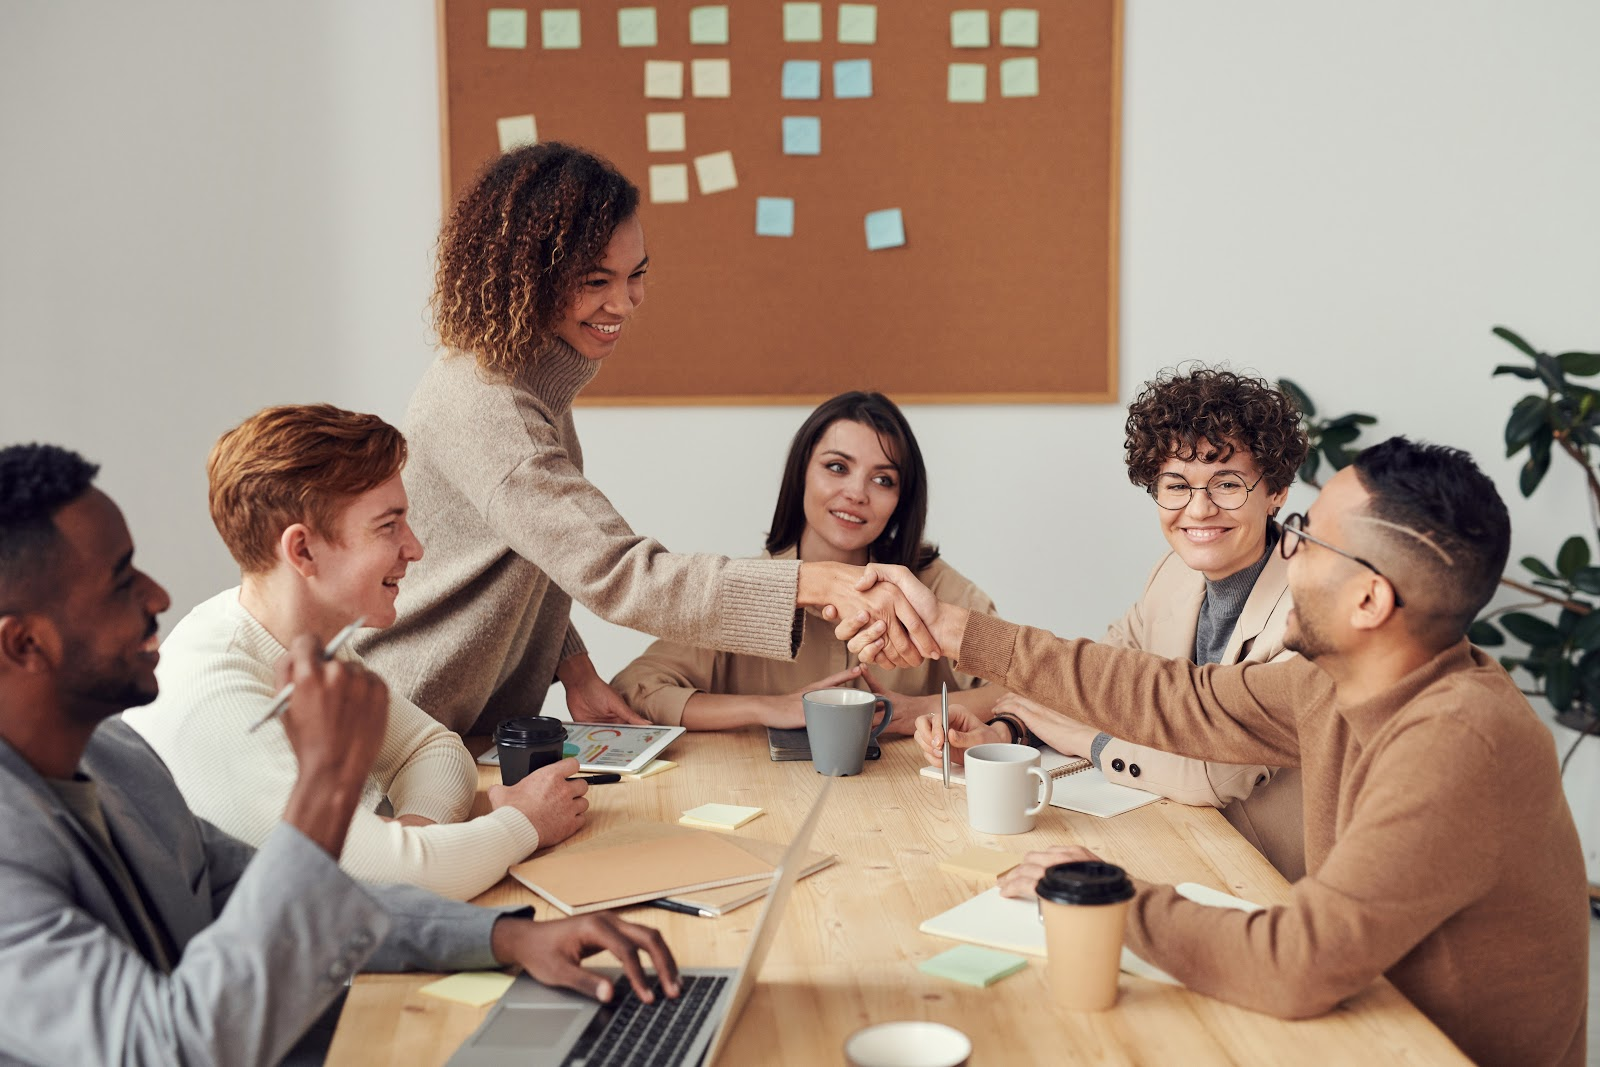 Rich results of employees sit around a boardroom table